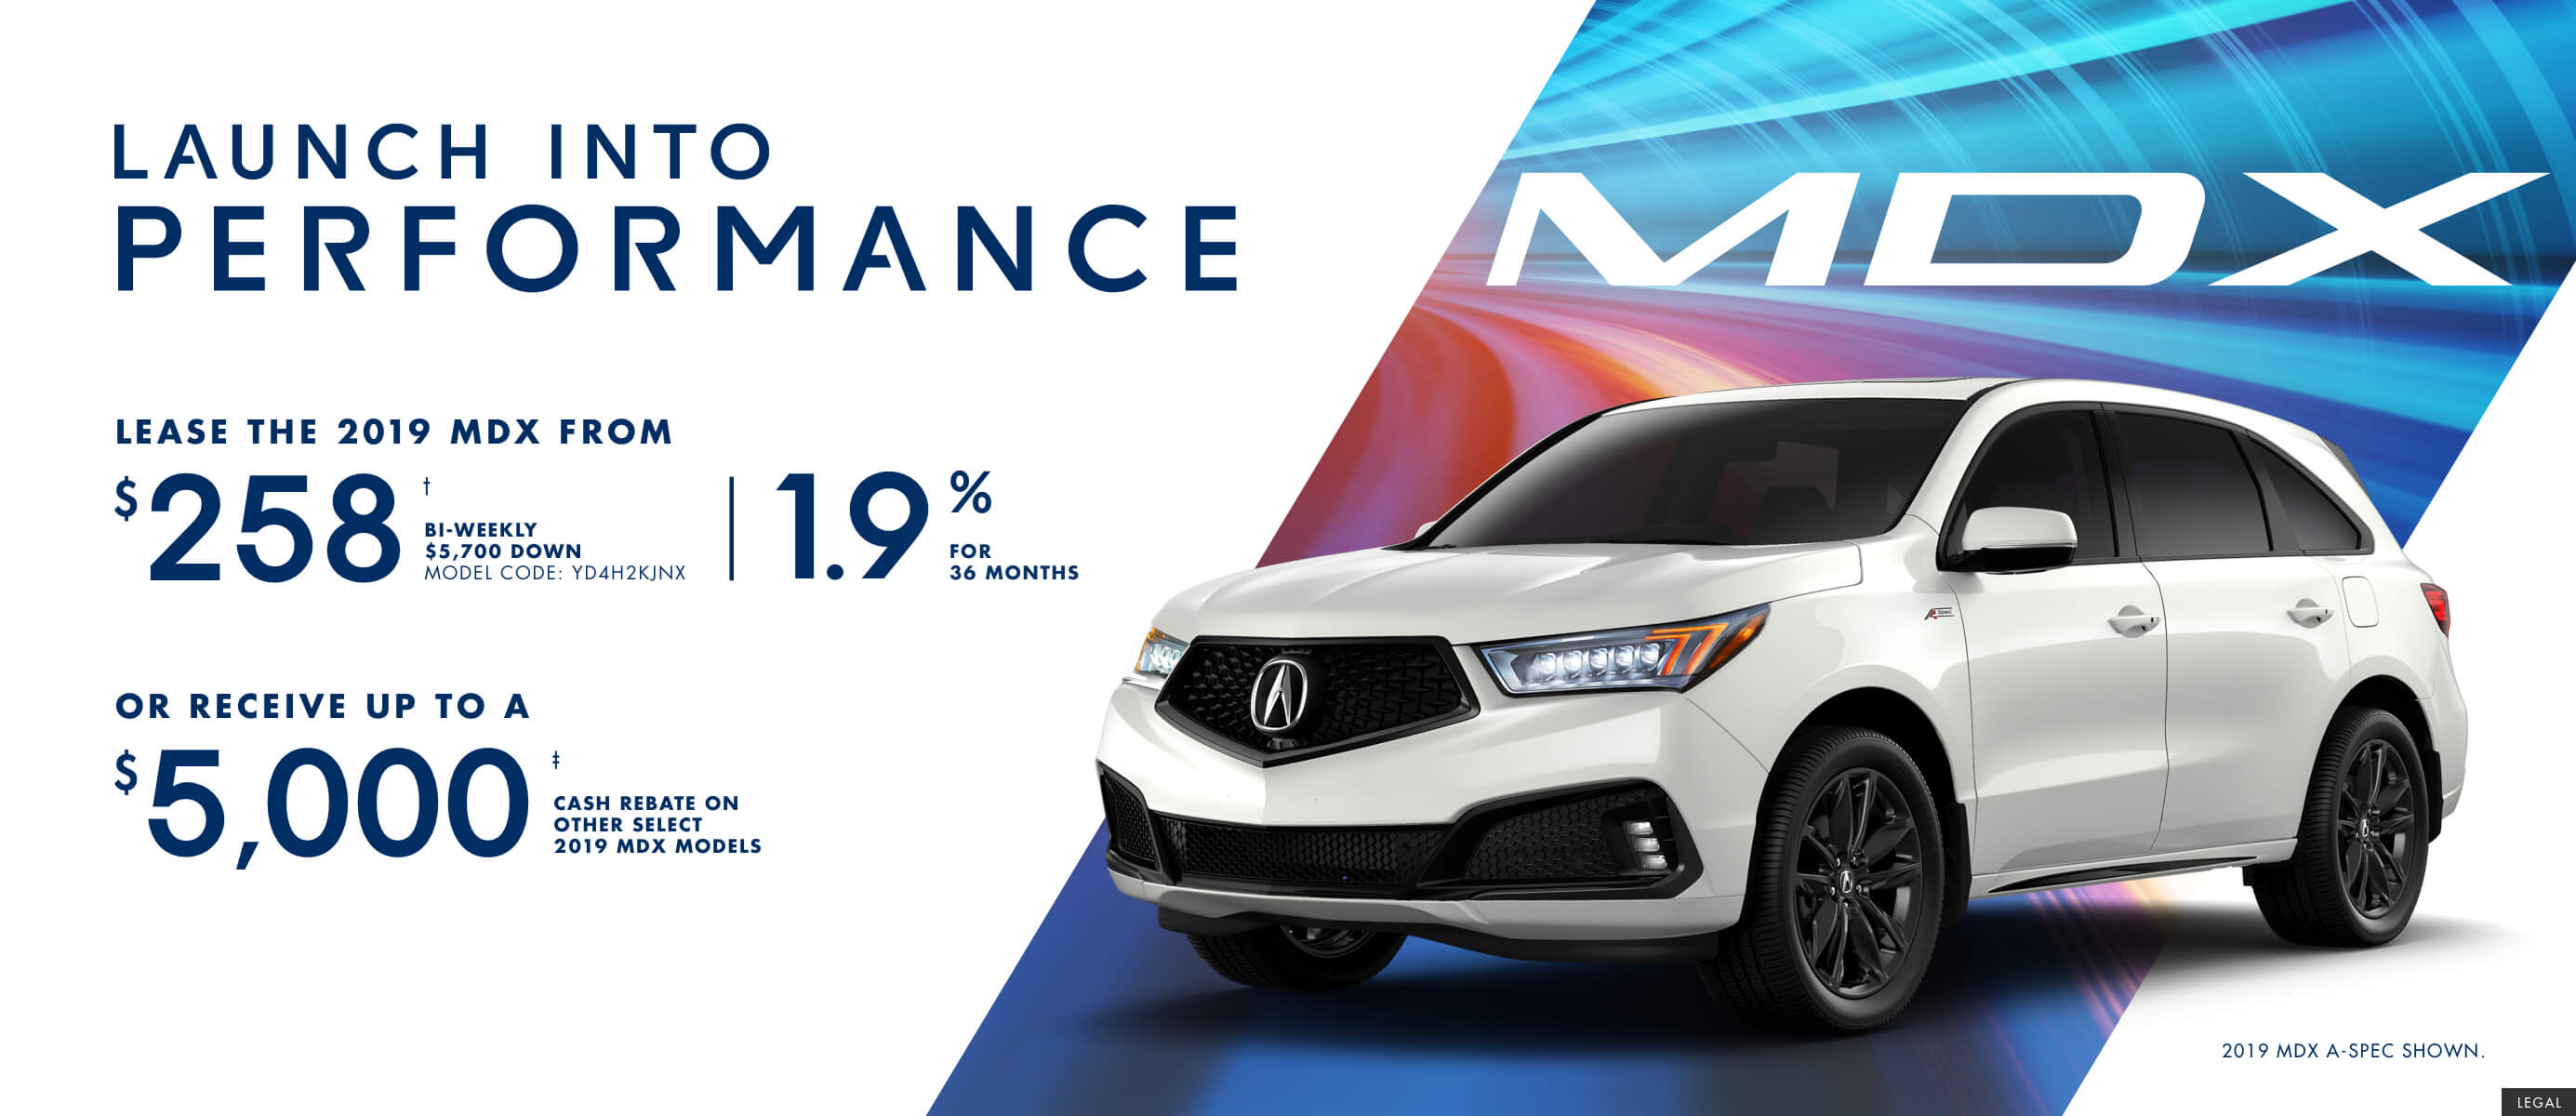 2019 Acura MDX |  Launch Into Performance